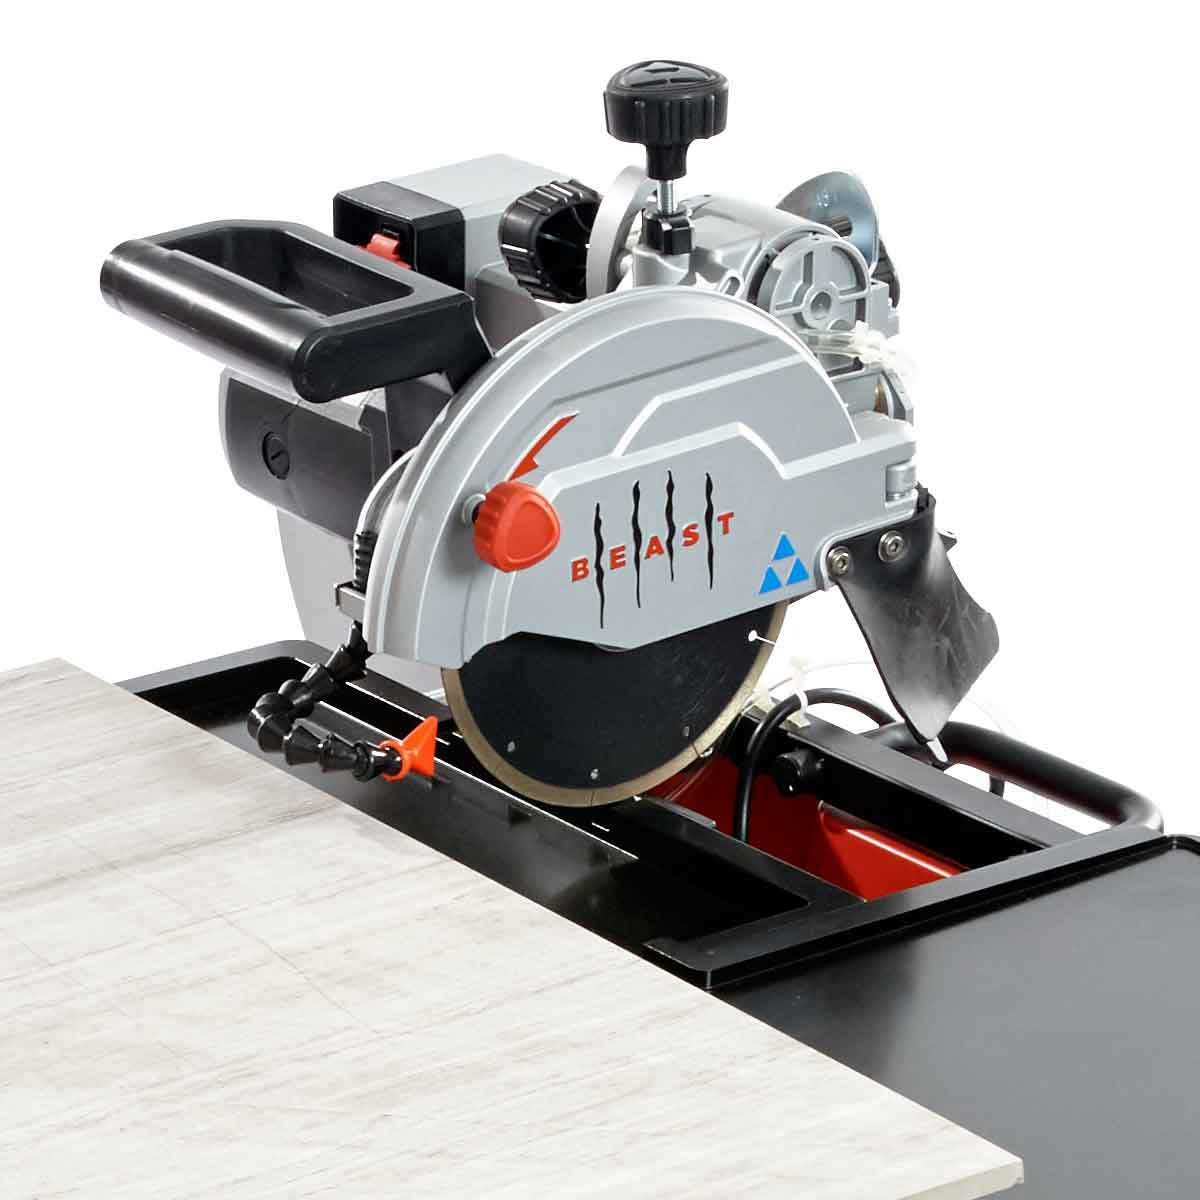 Lackmond Beast 7 tile saw cutting head assembly